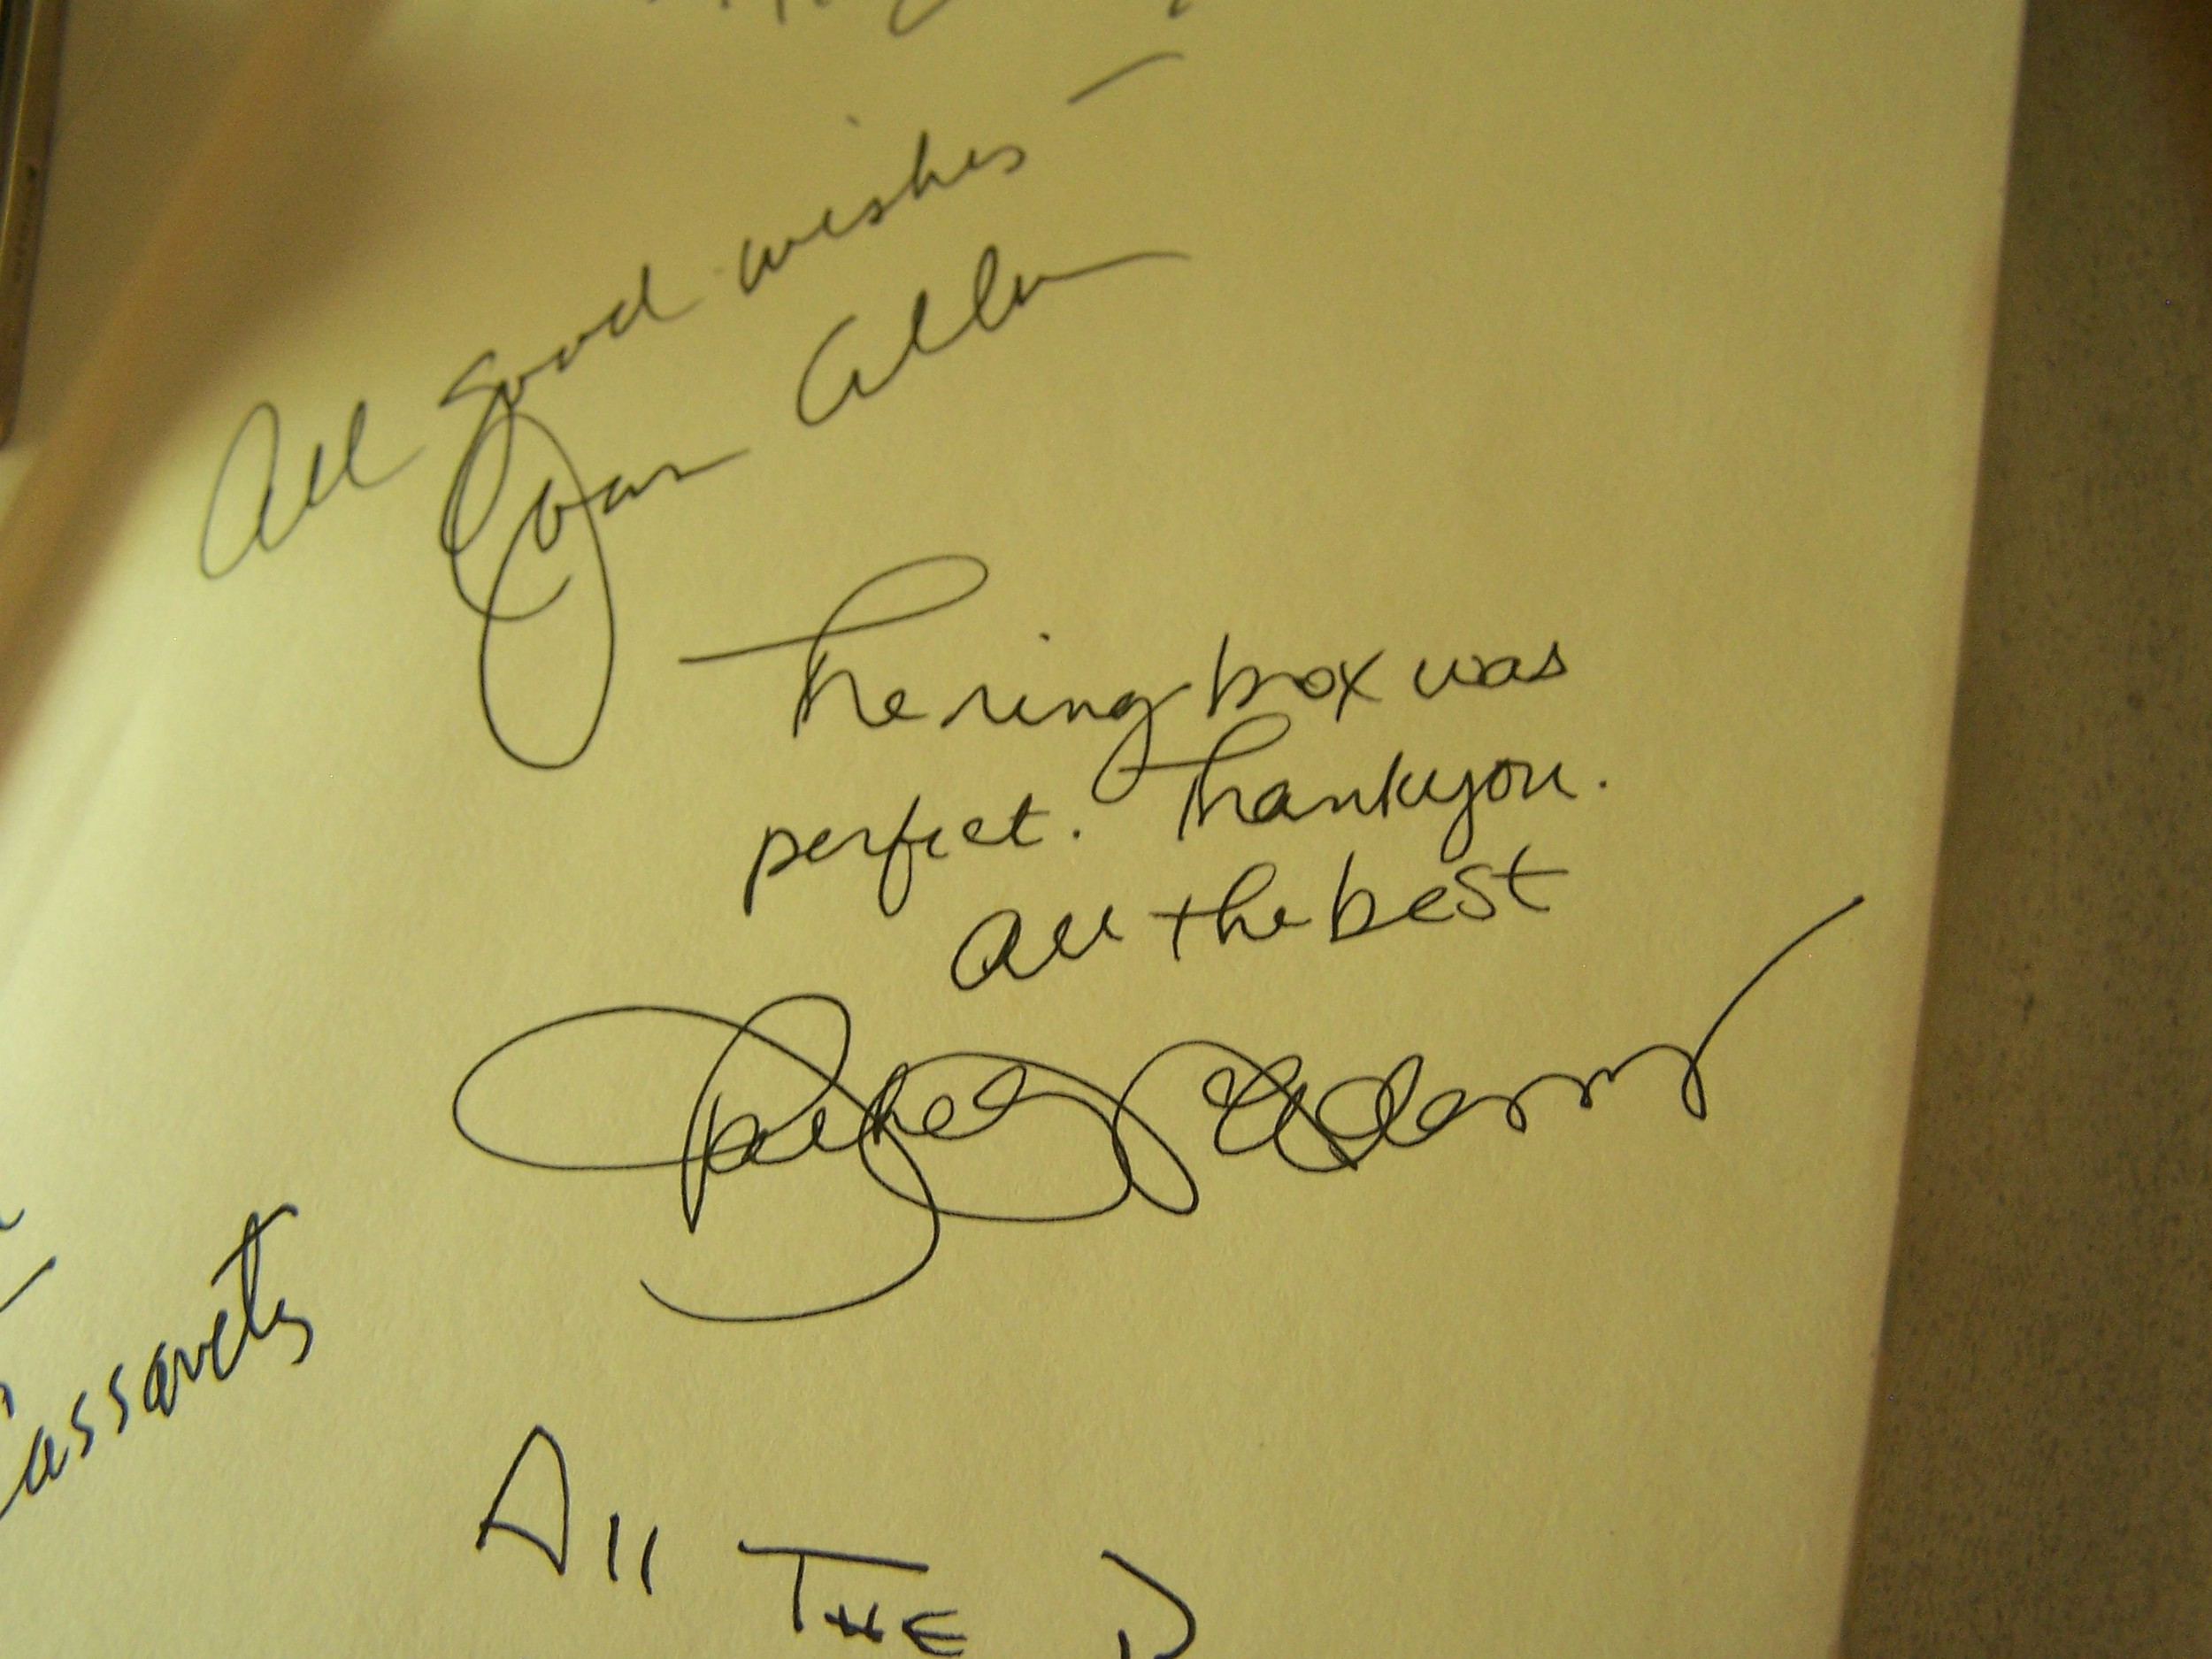 Rachel McAdams and Joan Allen's signatures along with other cast members... Priceless!